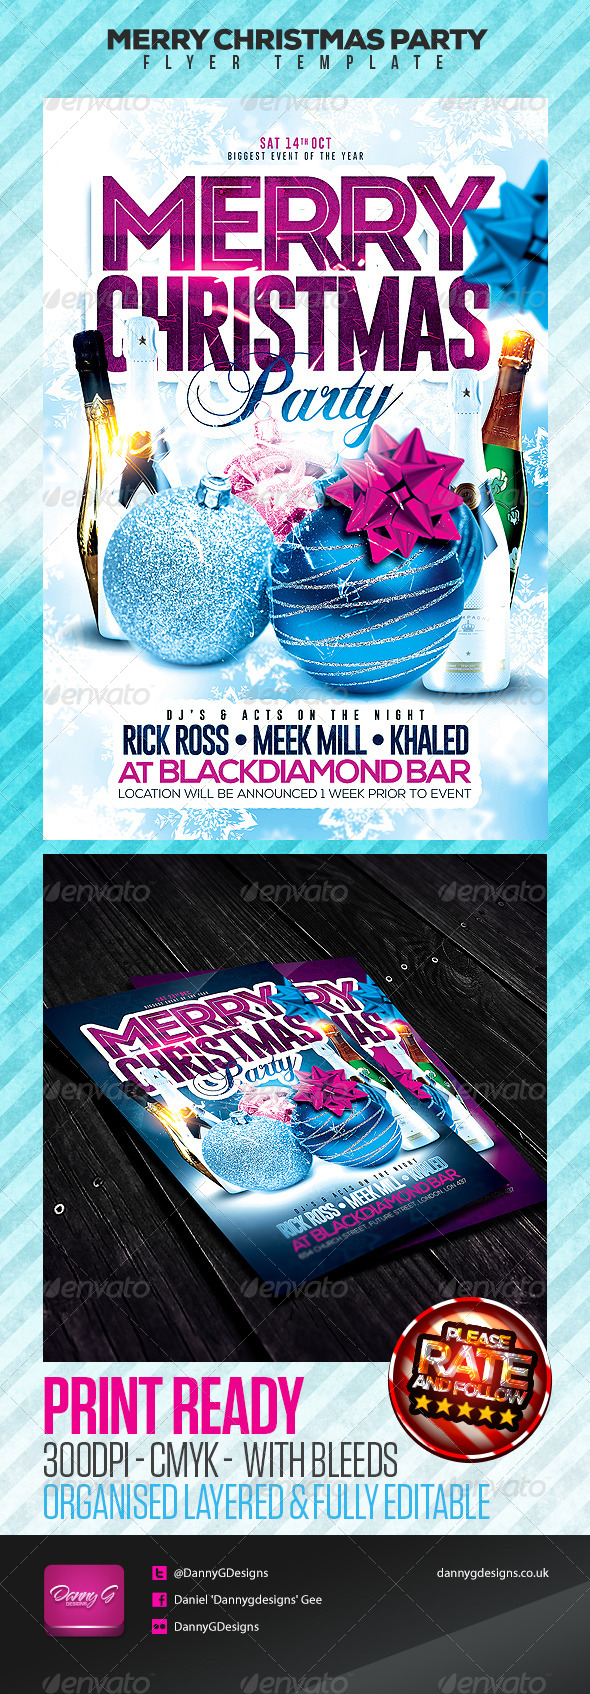 Merry Christmas Party Flyer Template - Clubs & Parties Events